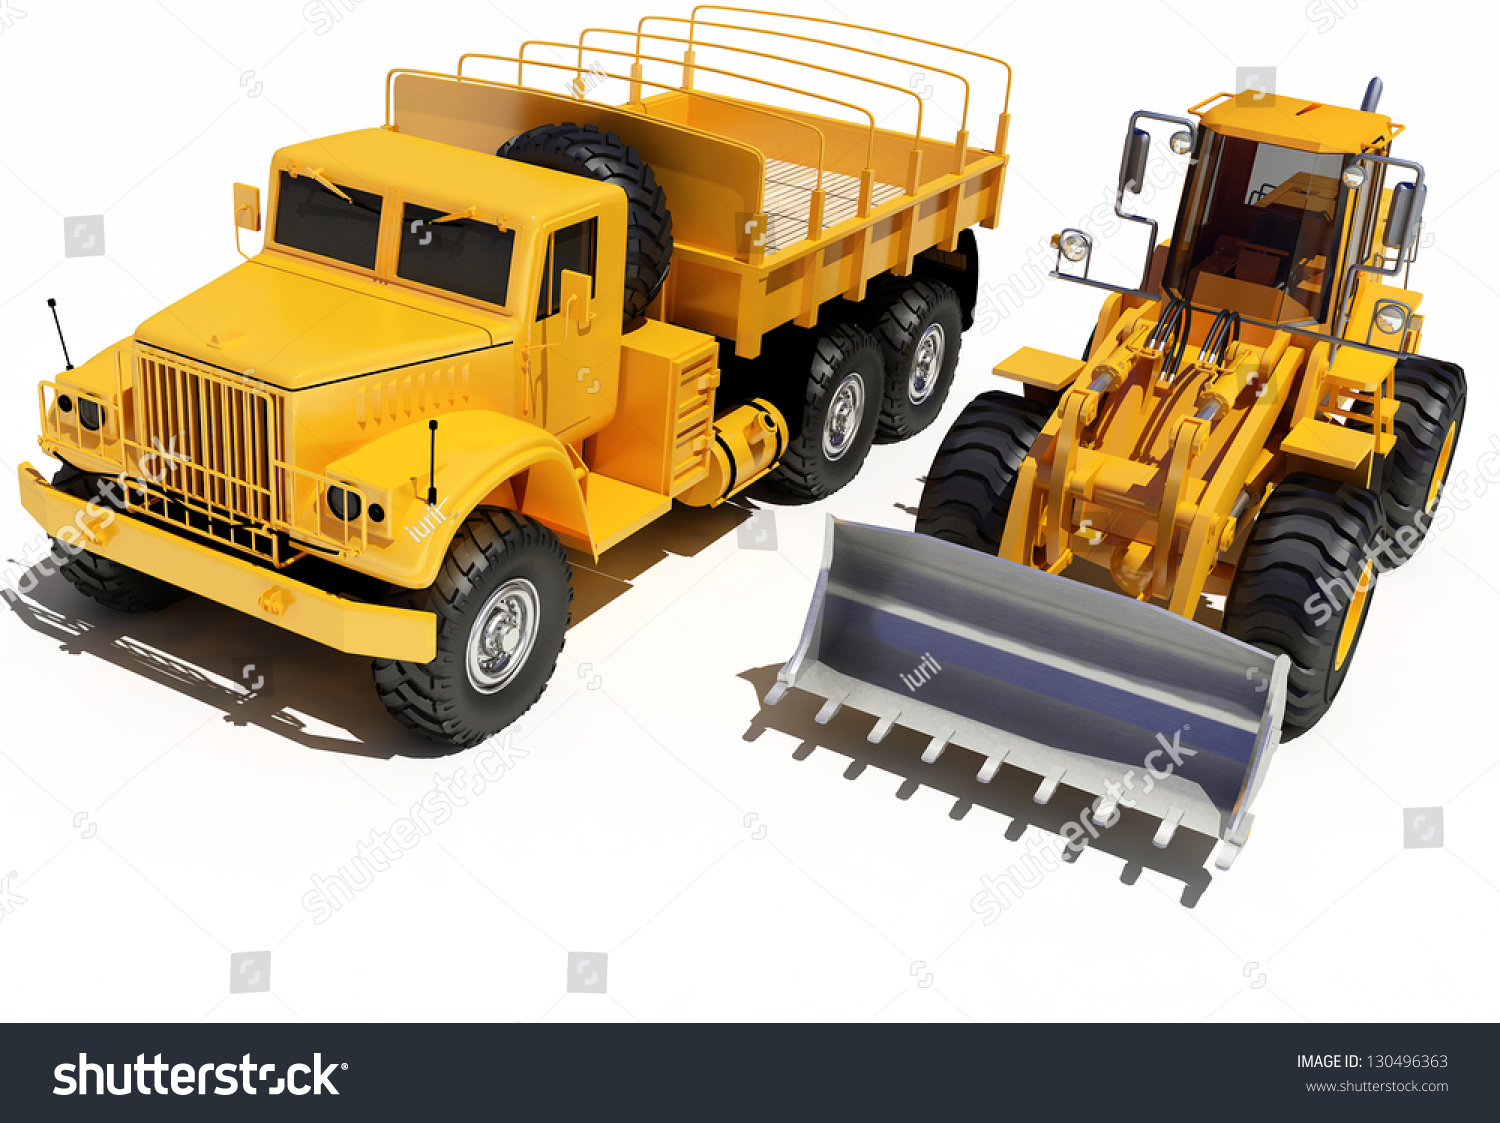 Construction Equipment On A White Background